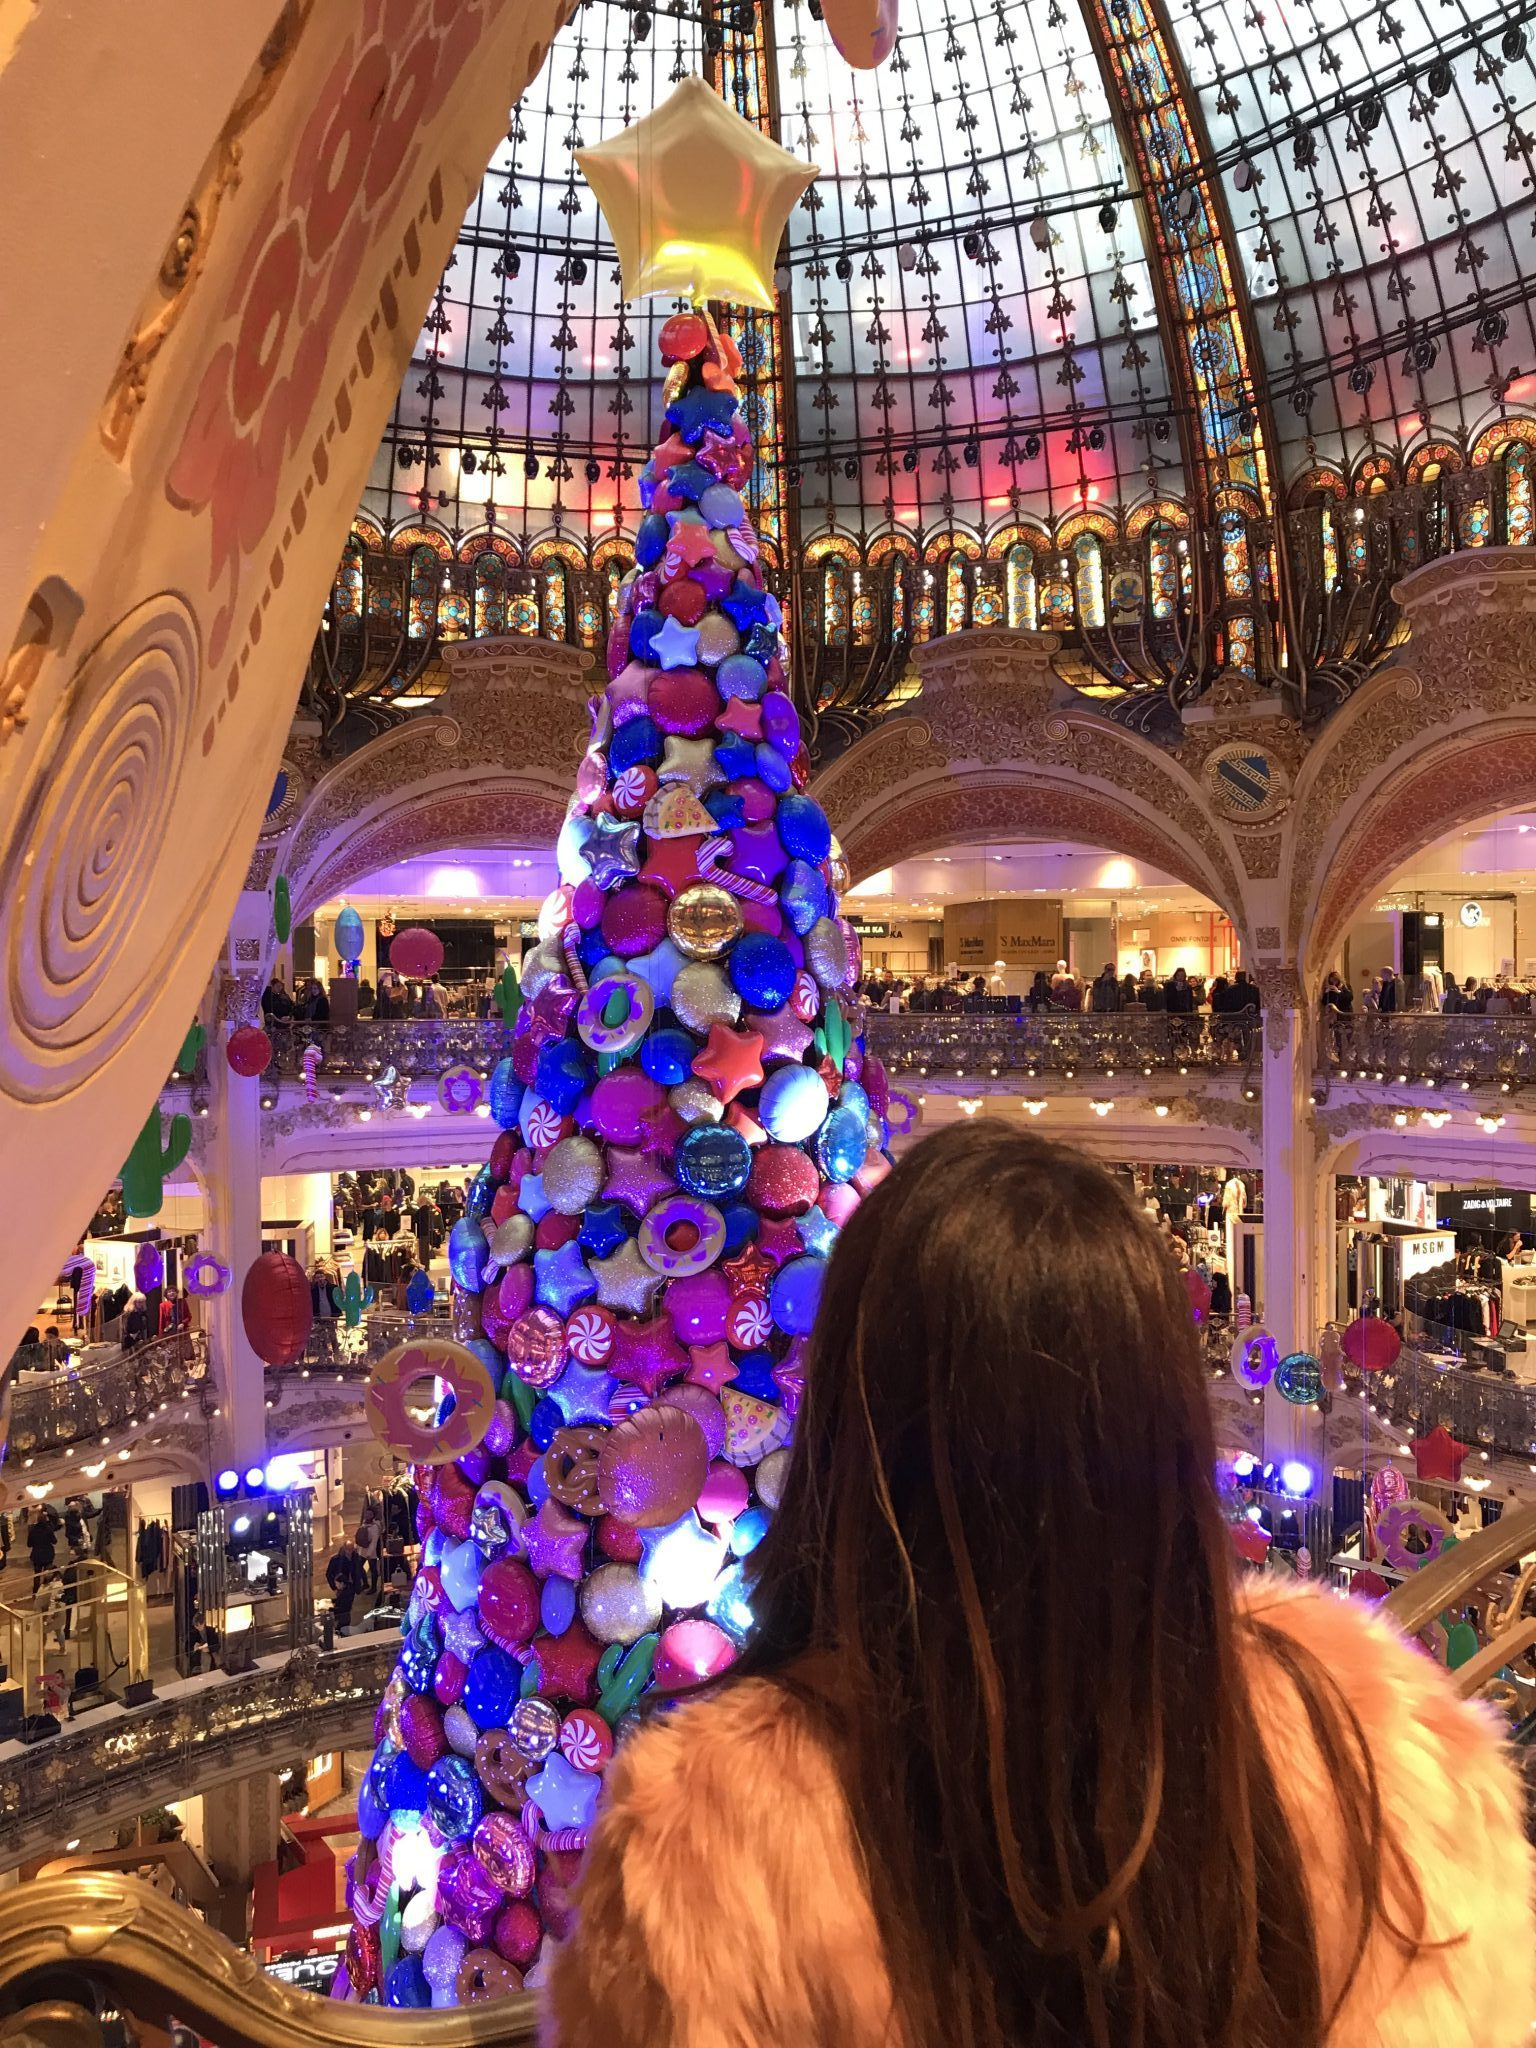 12 Best Photo Spots in Paris For Epic Instagram Shots - Galleries Lafayette